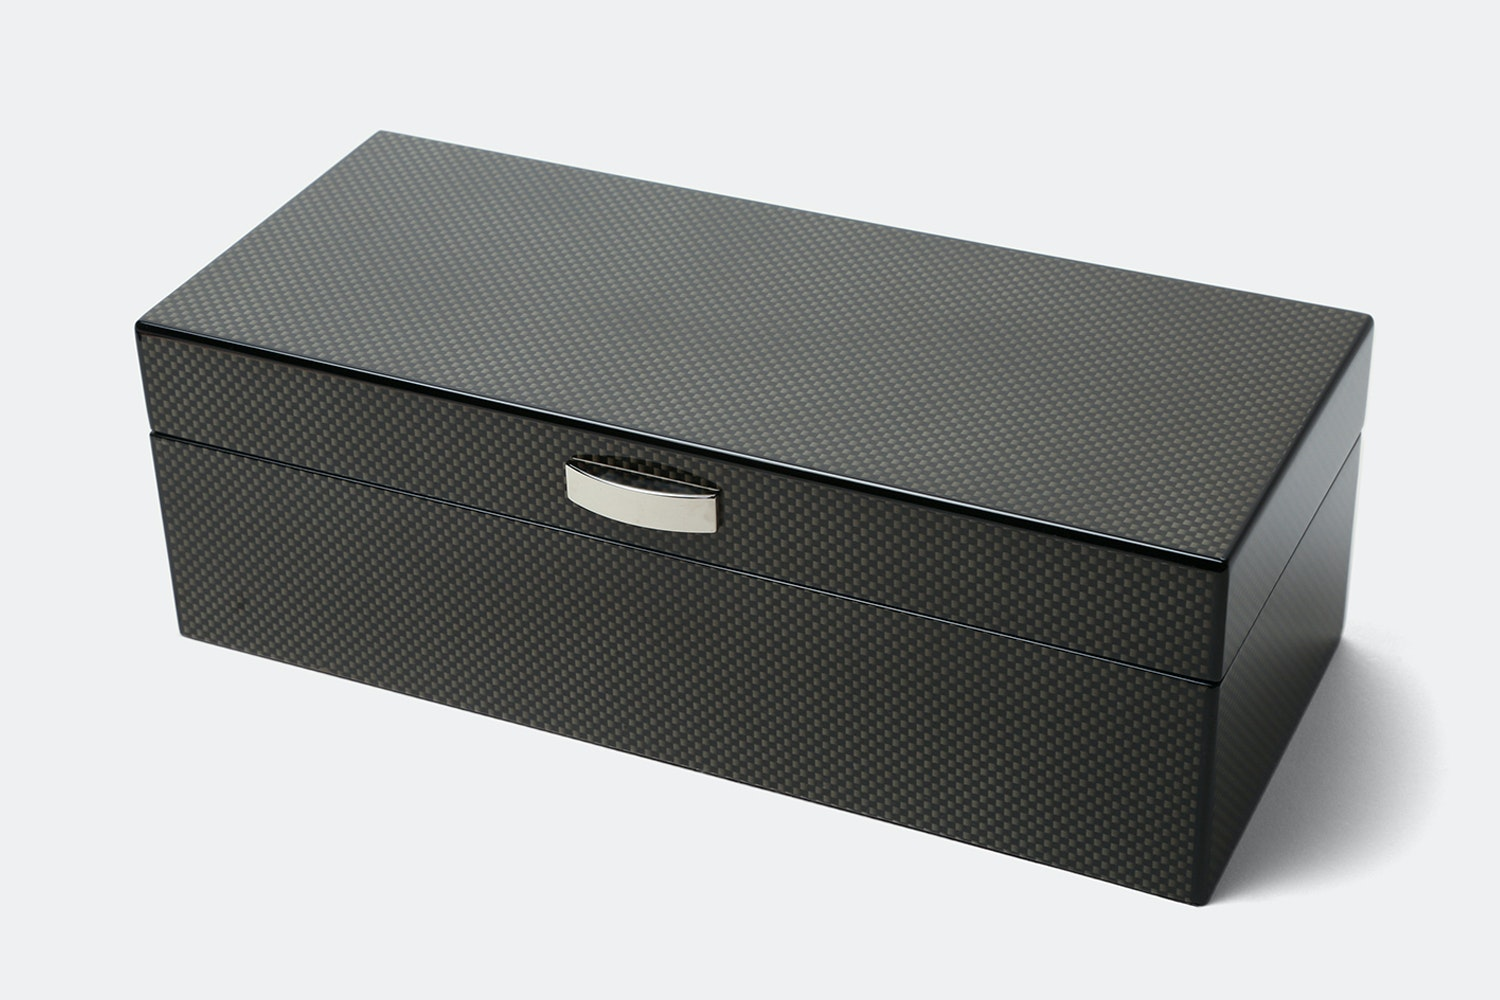 3 Watch Box with Lift out Valet | Carbon Fiber (- $12)